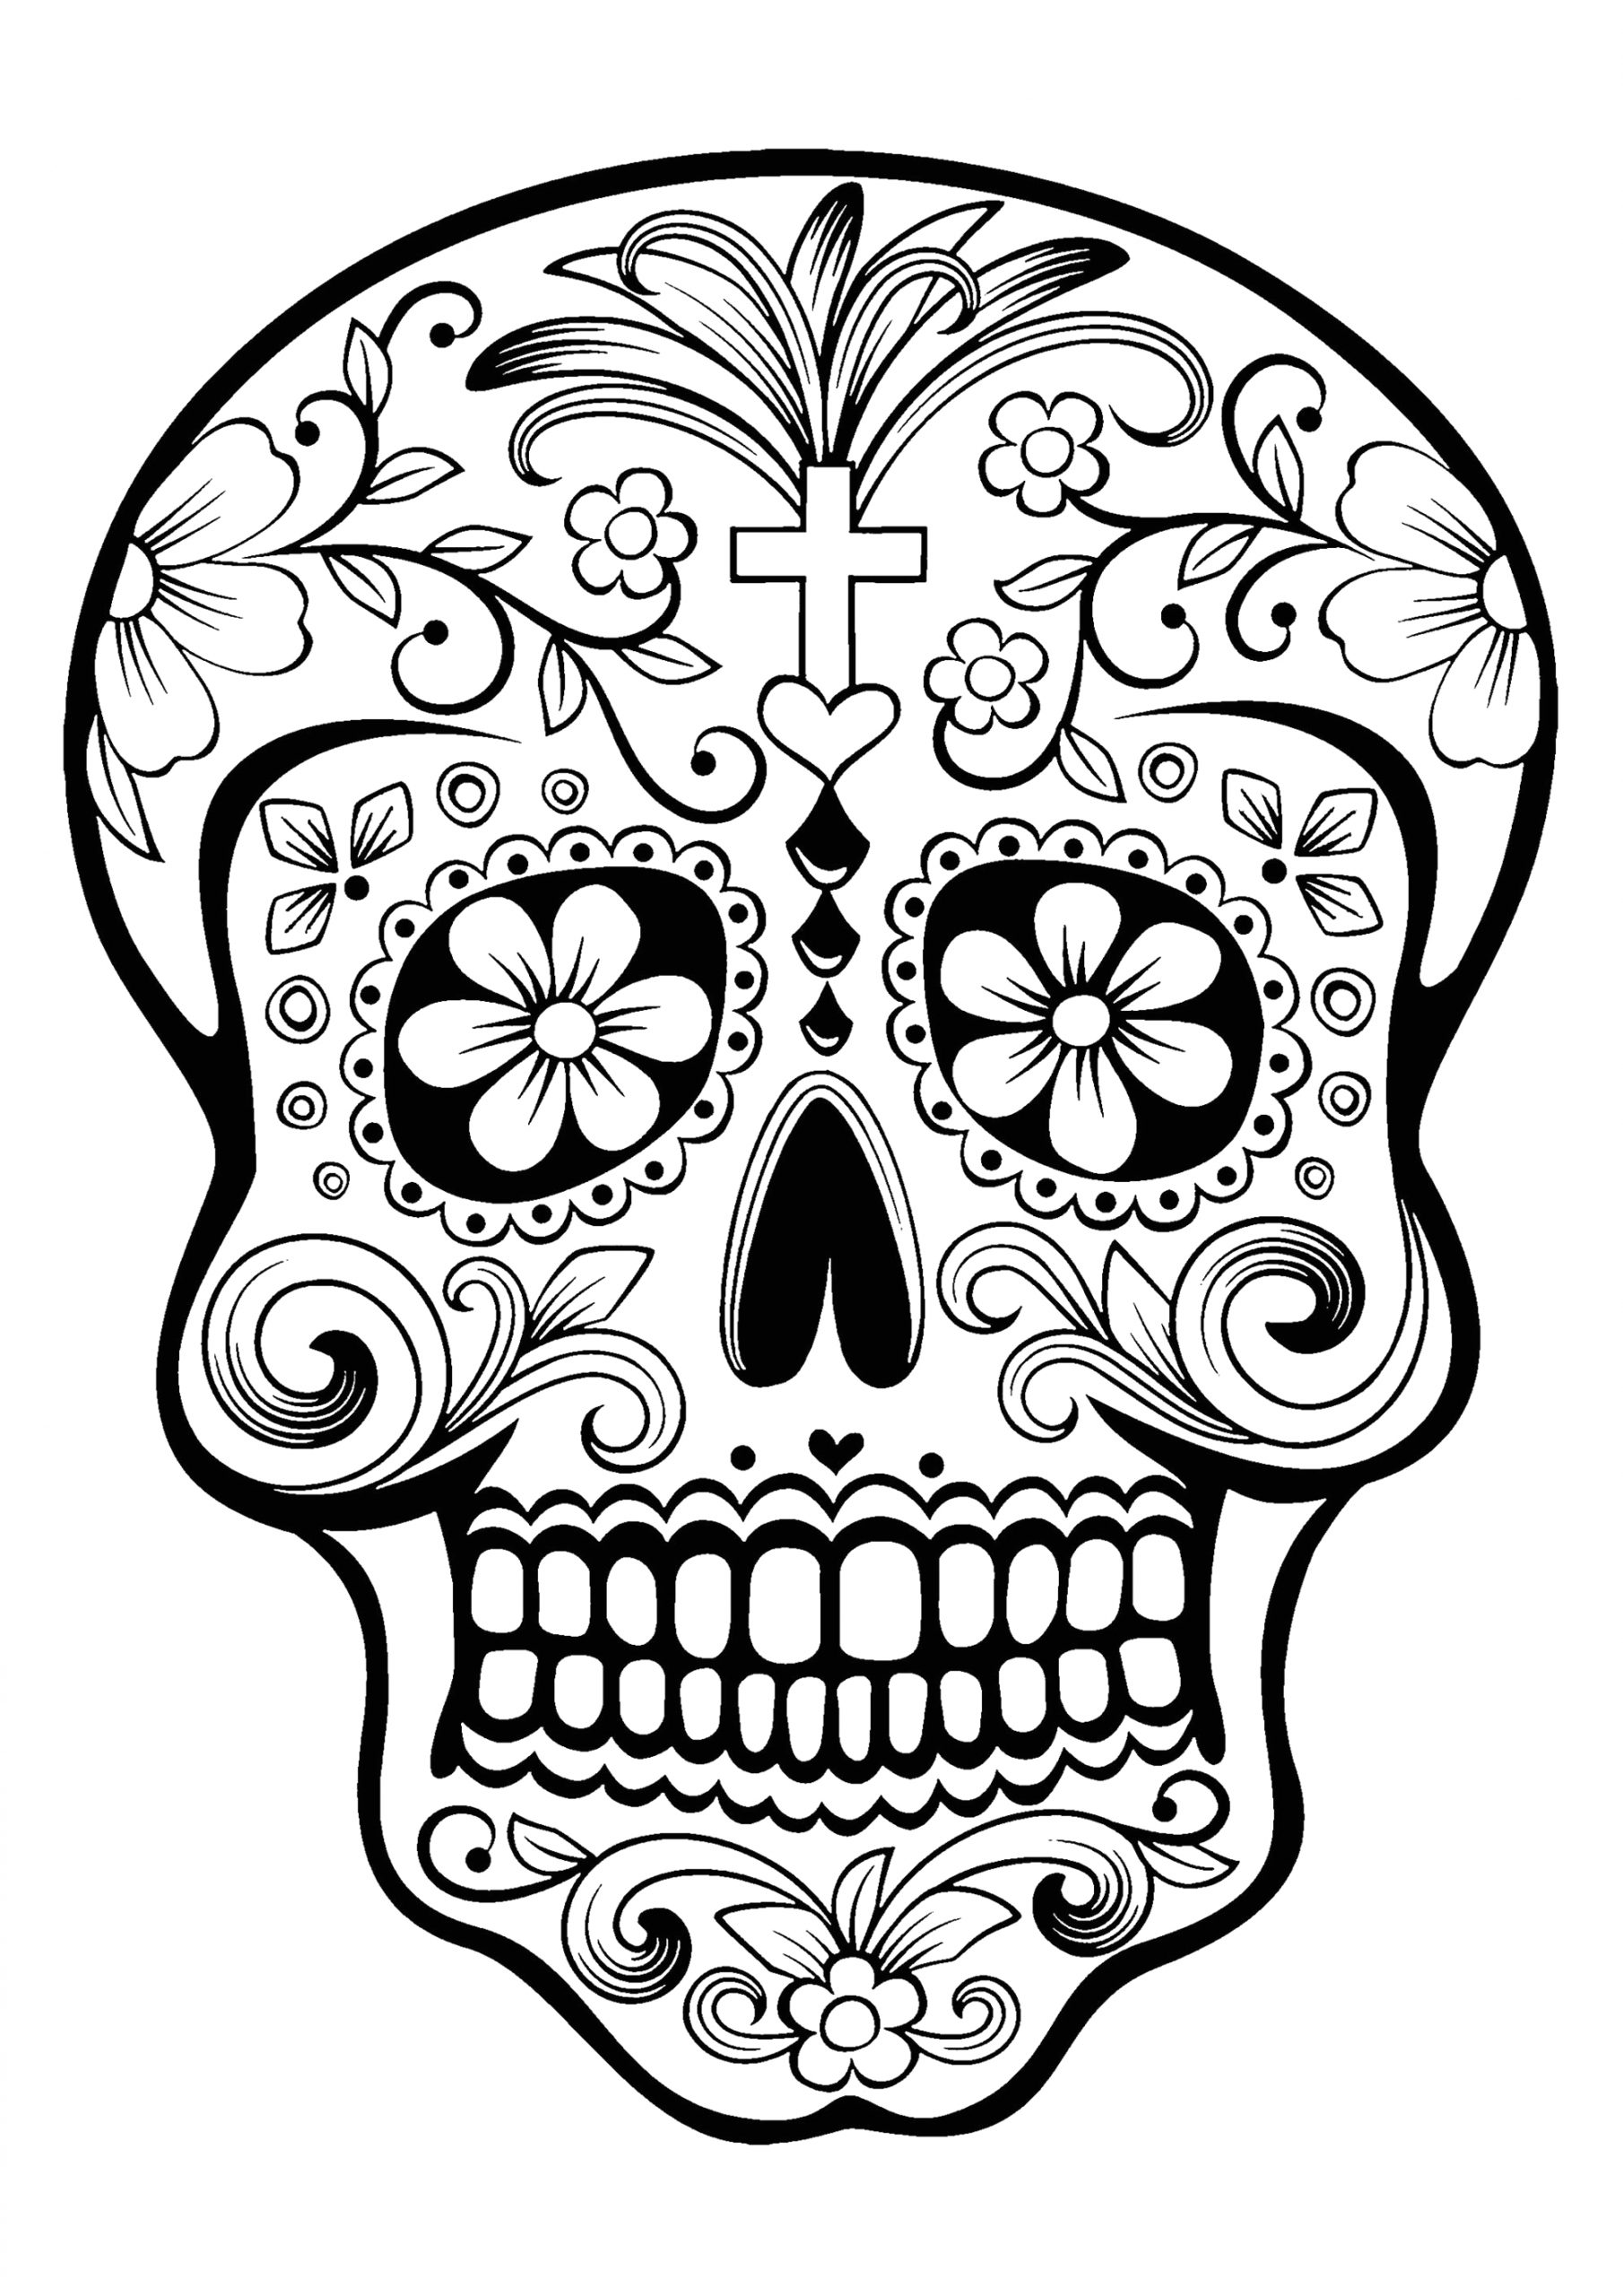 Day Of the Dead Skeleton Coloring Page Day the Dead Skeleton Drawings at Paintingvalley